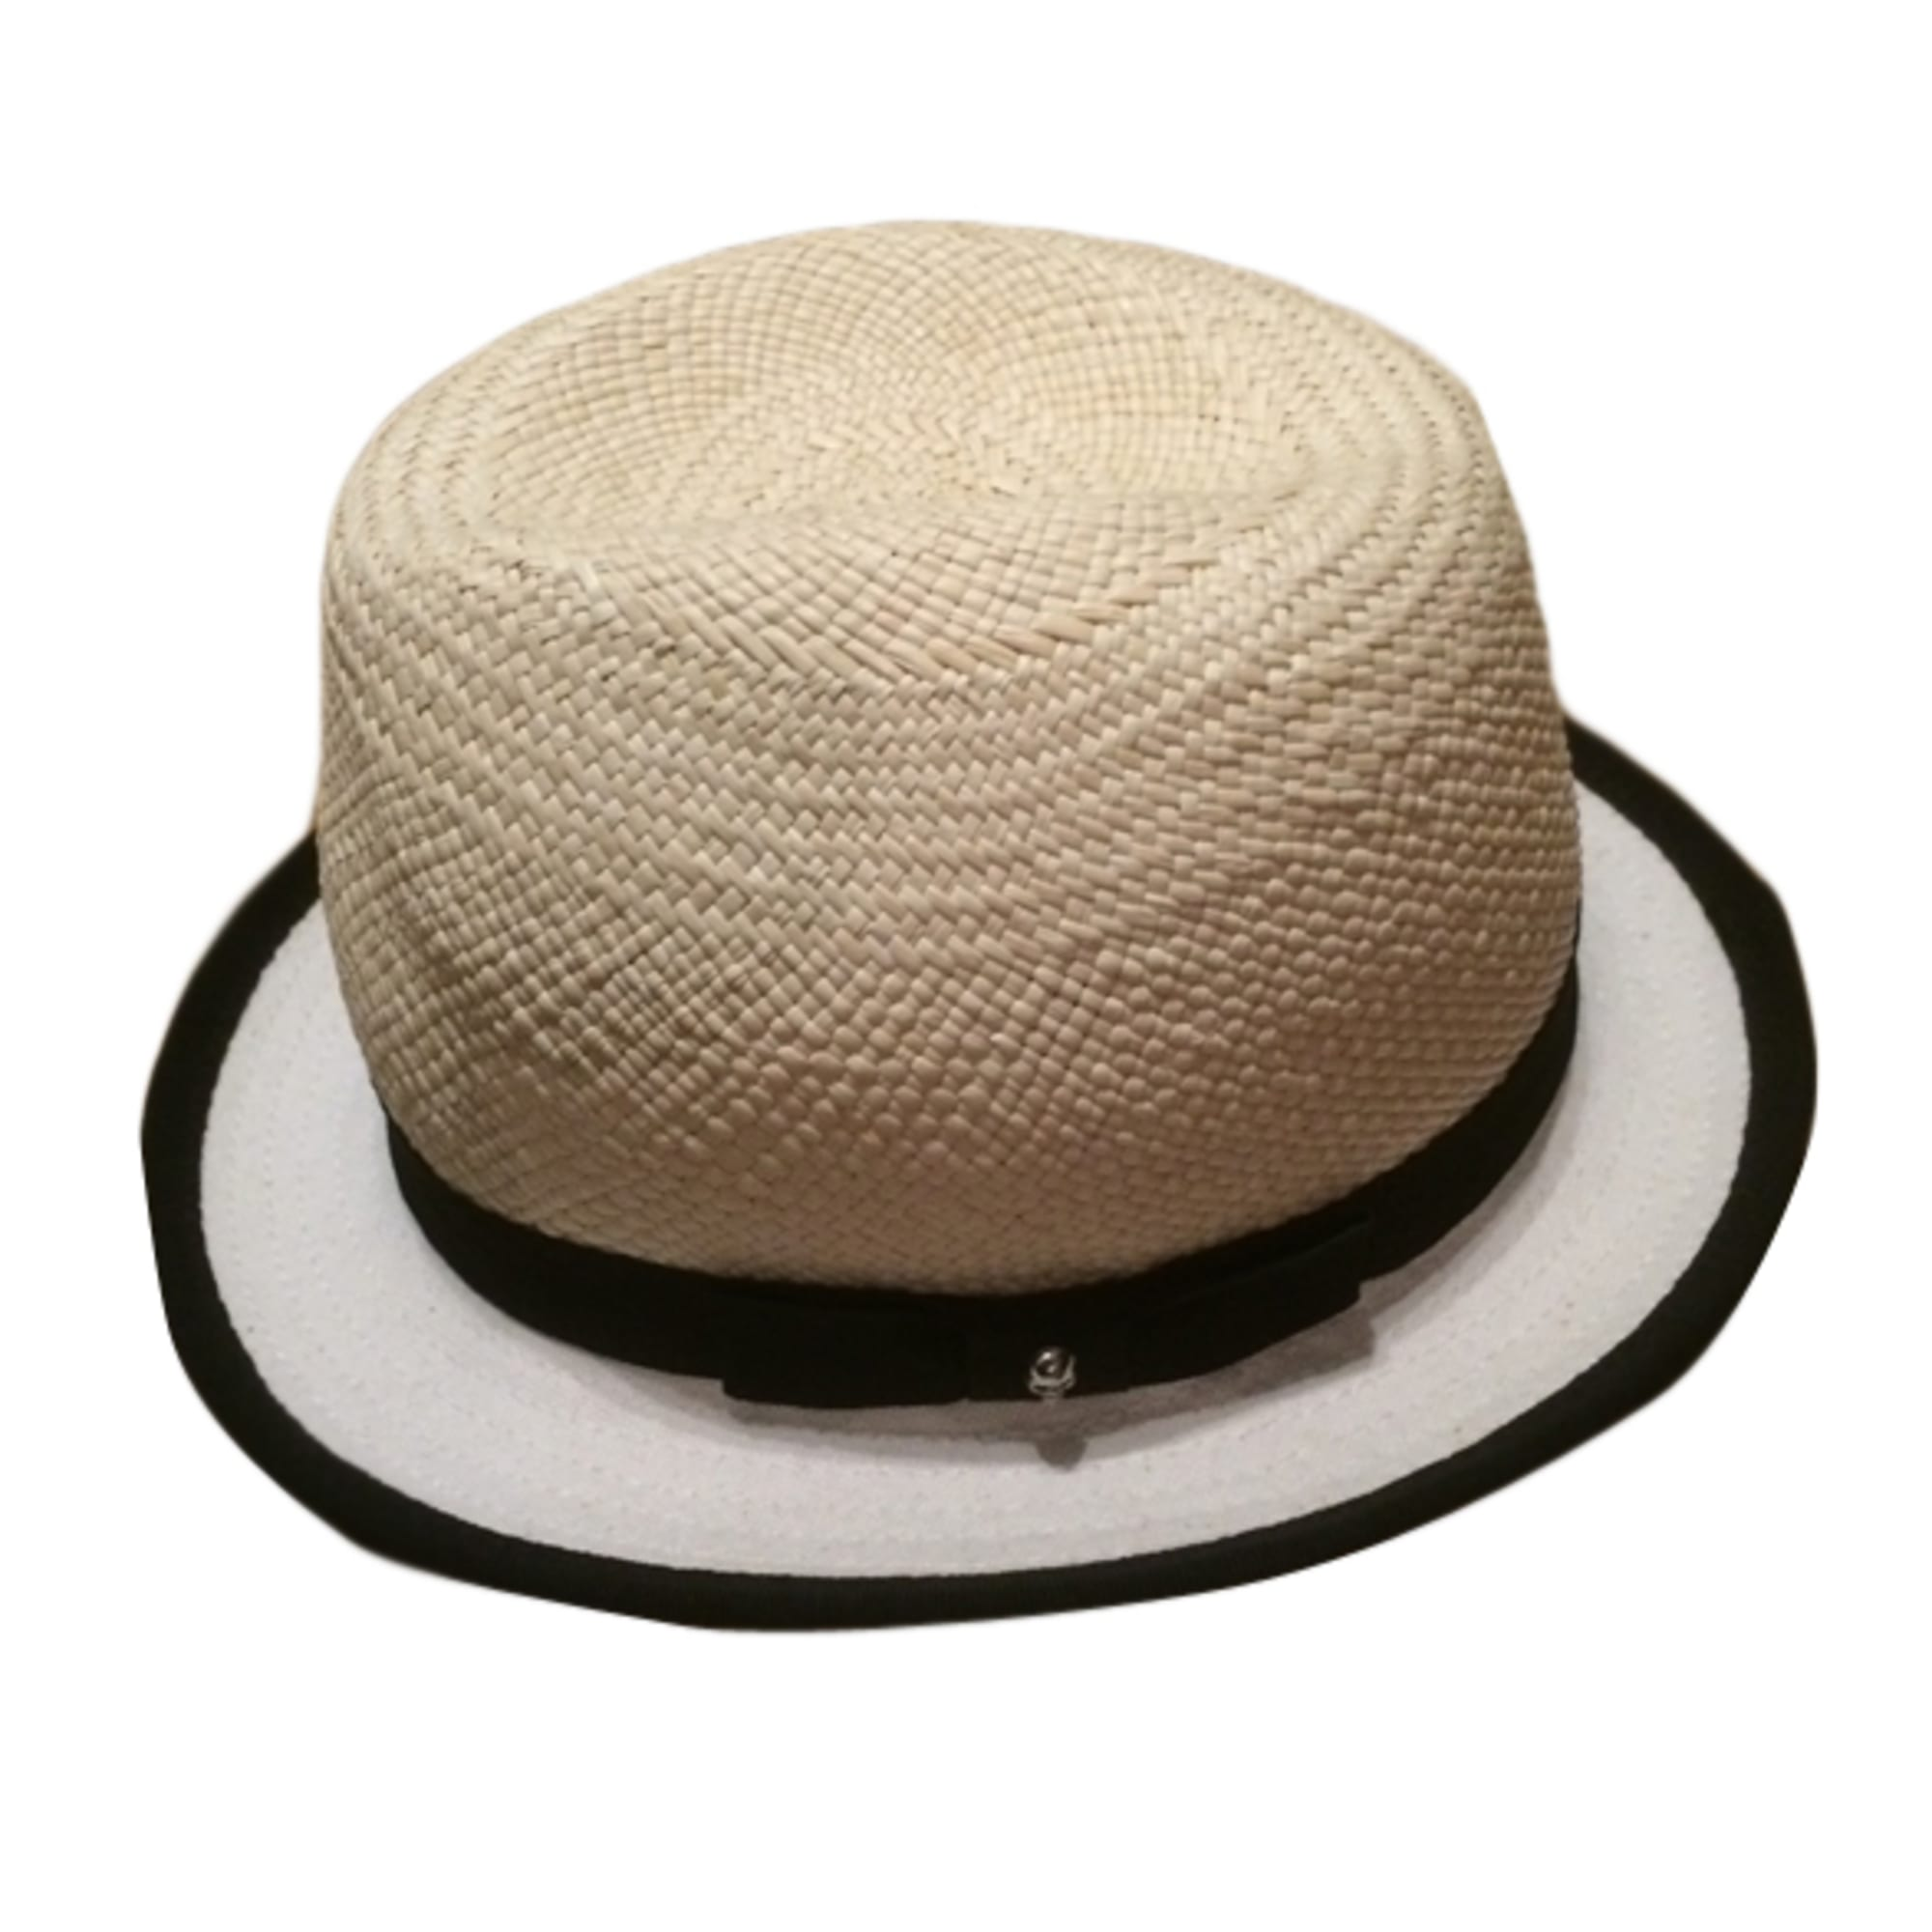 Kooples Blanc Chapeau 55 The 4123045 l1uFcTKJ3